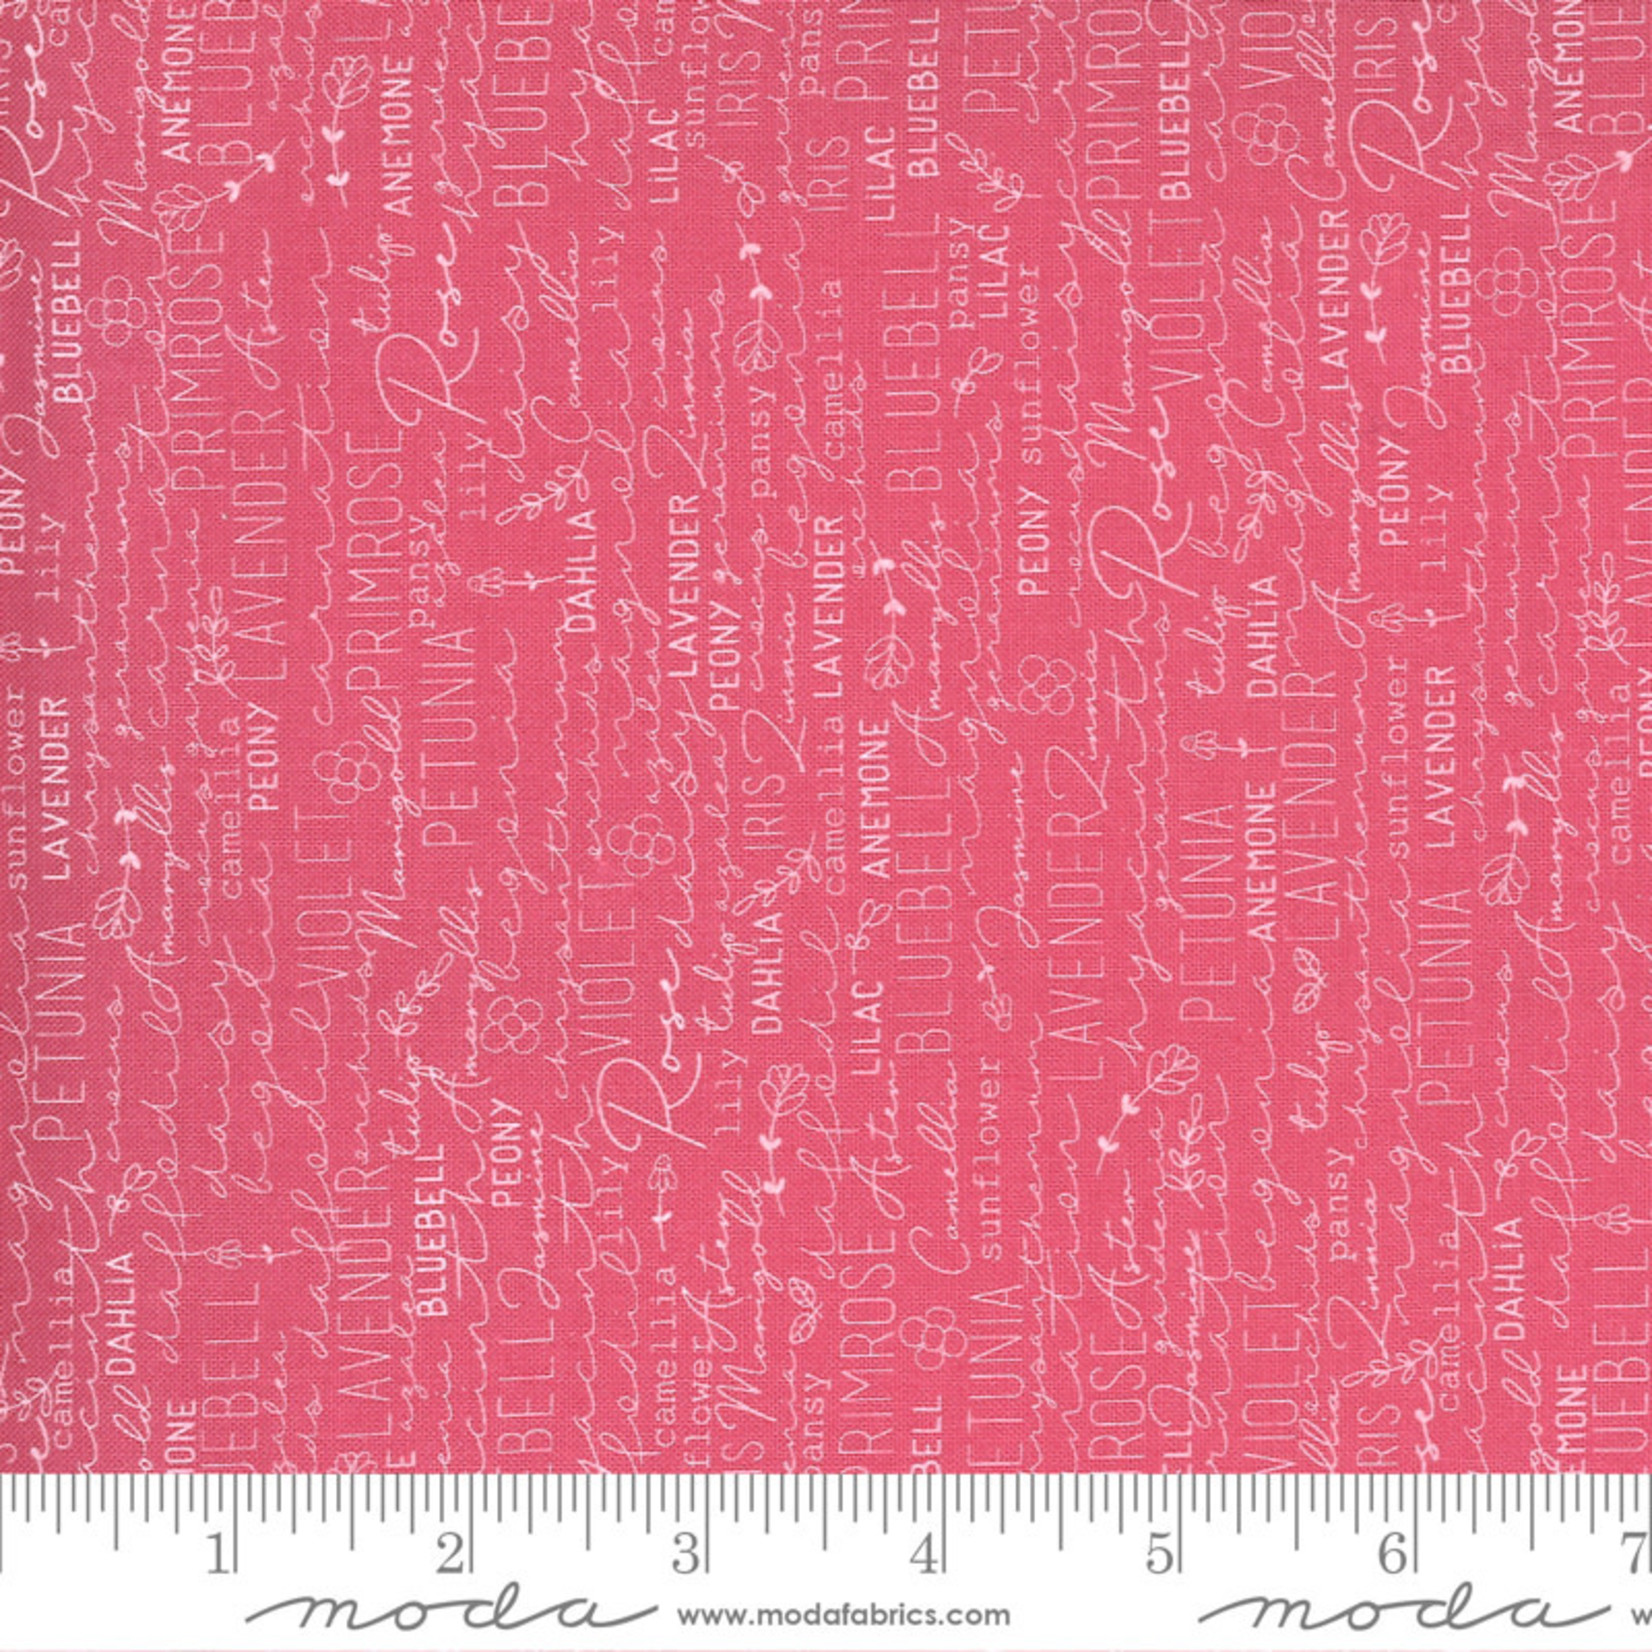 Sweetwater Spring Chicken, Posey, Pink 55520-22 $0.20 per cm or $20/m